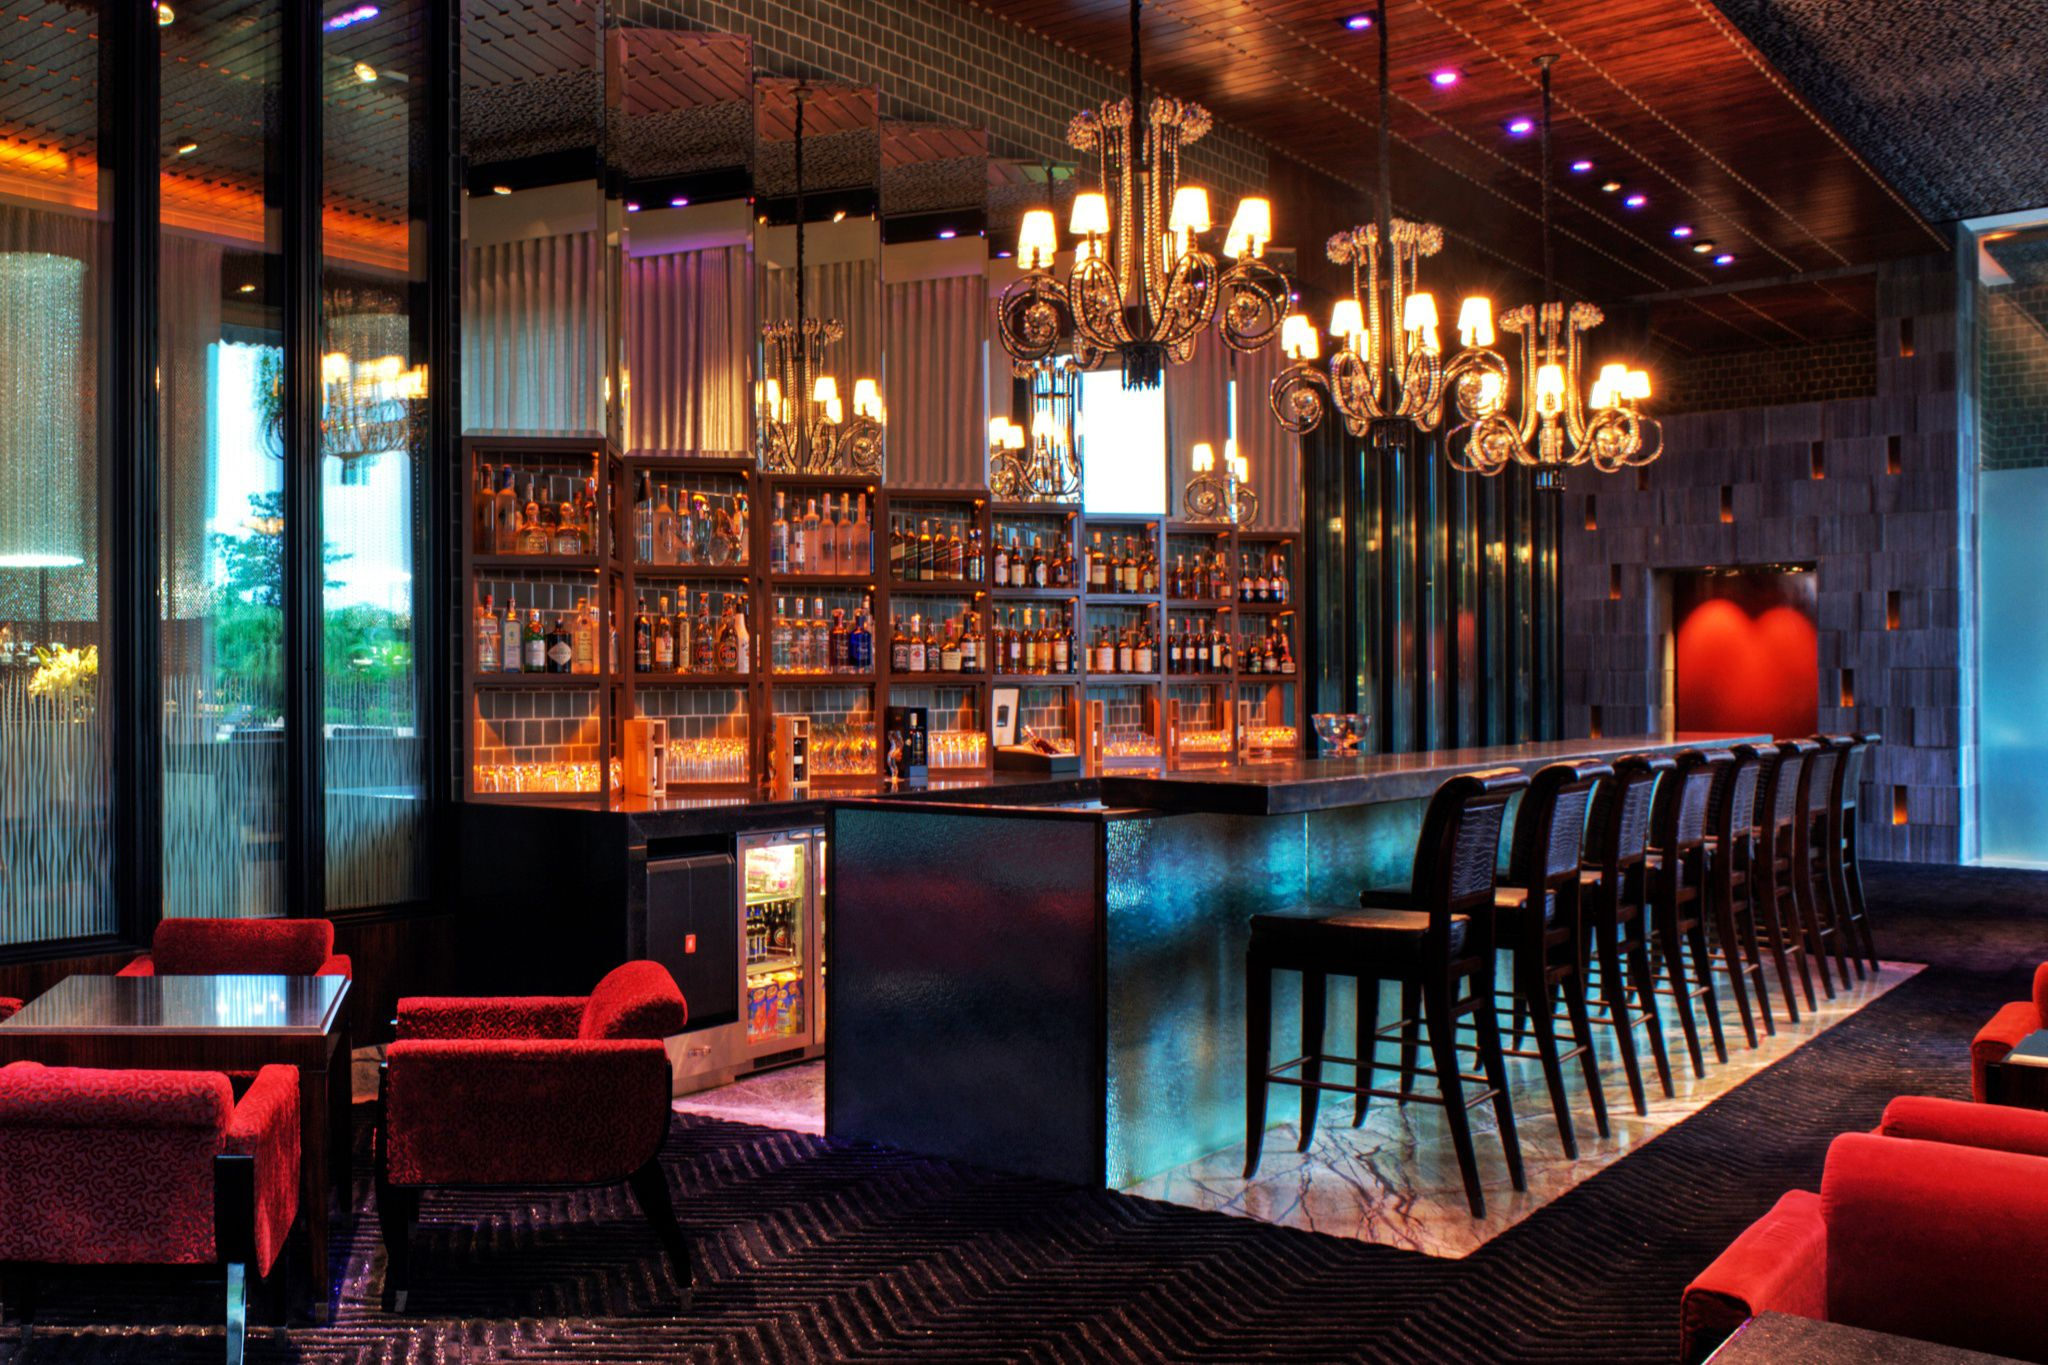 10 Best Delhi Bars And Clubs From Casual To Classy